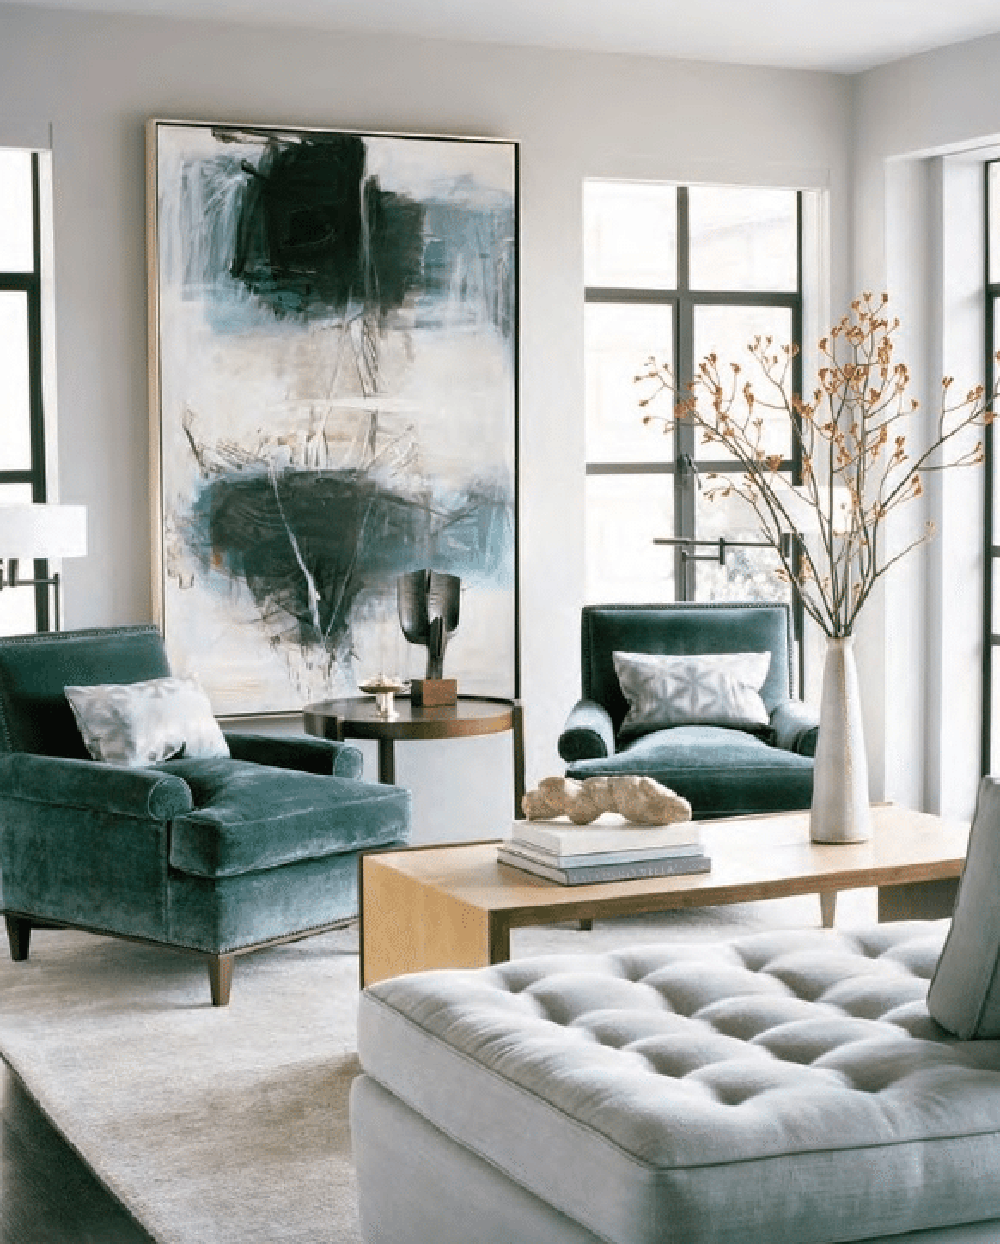 7 DECOR TRENDS FOR FALL | Pinterest | Living rooms, Interiors and Room